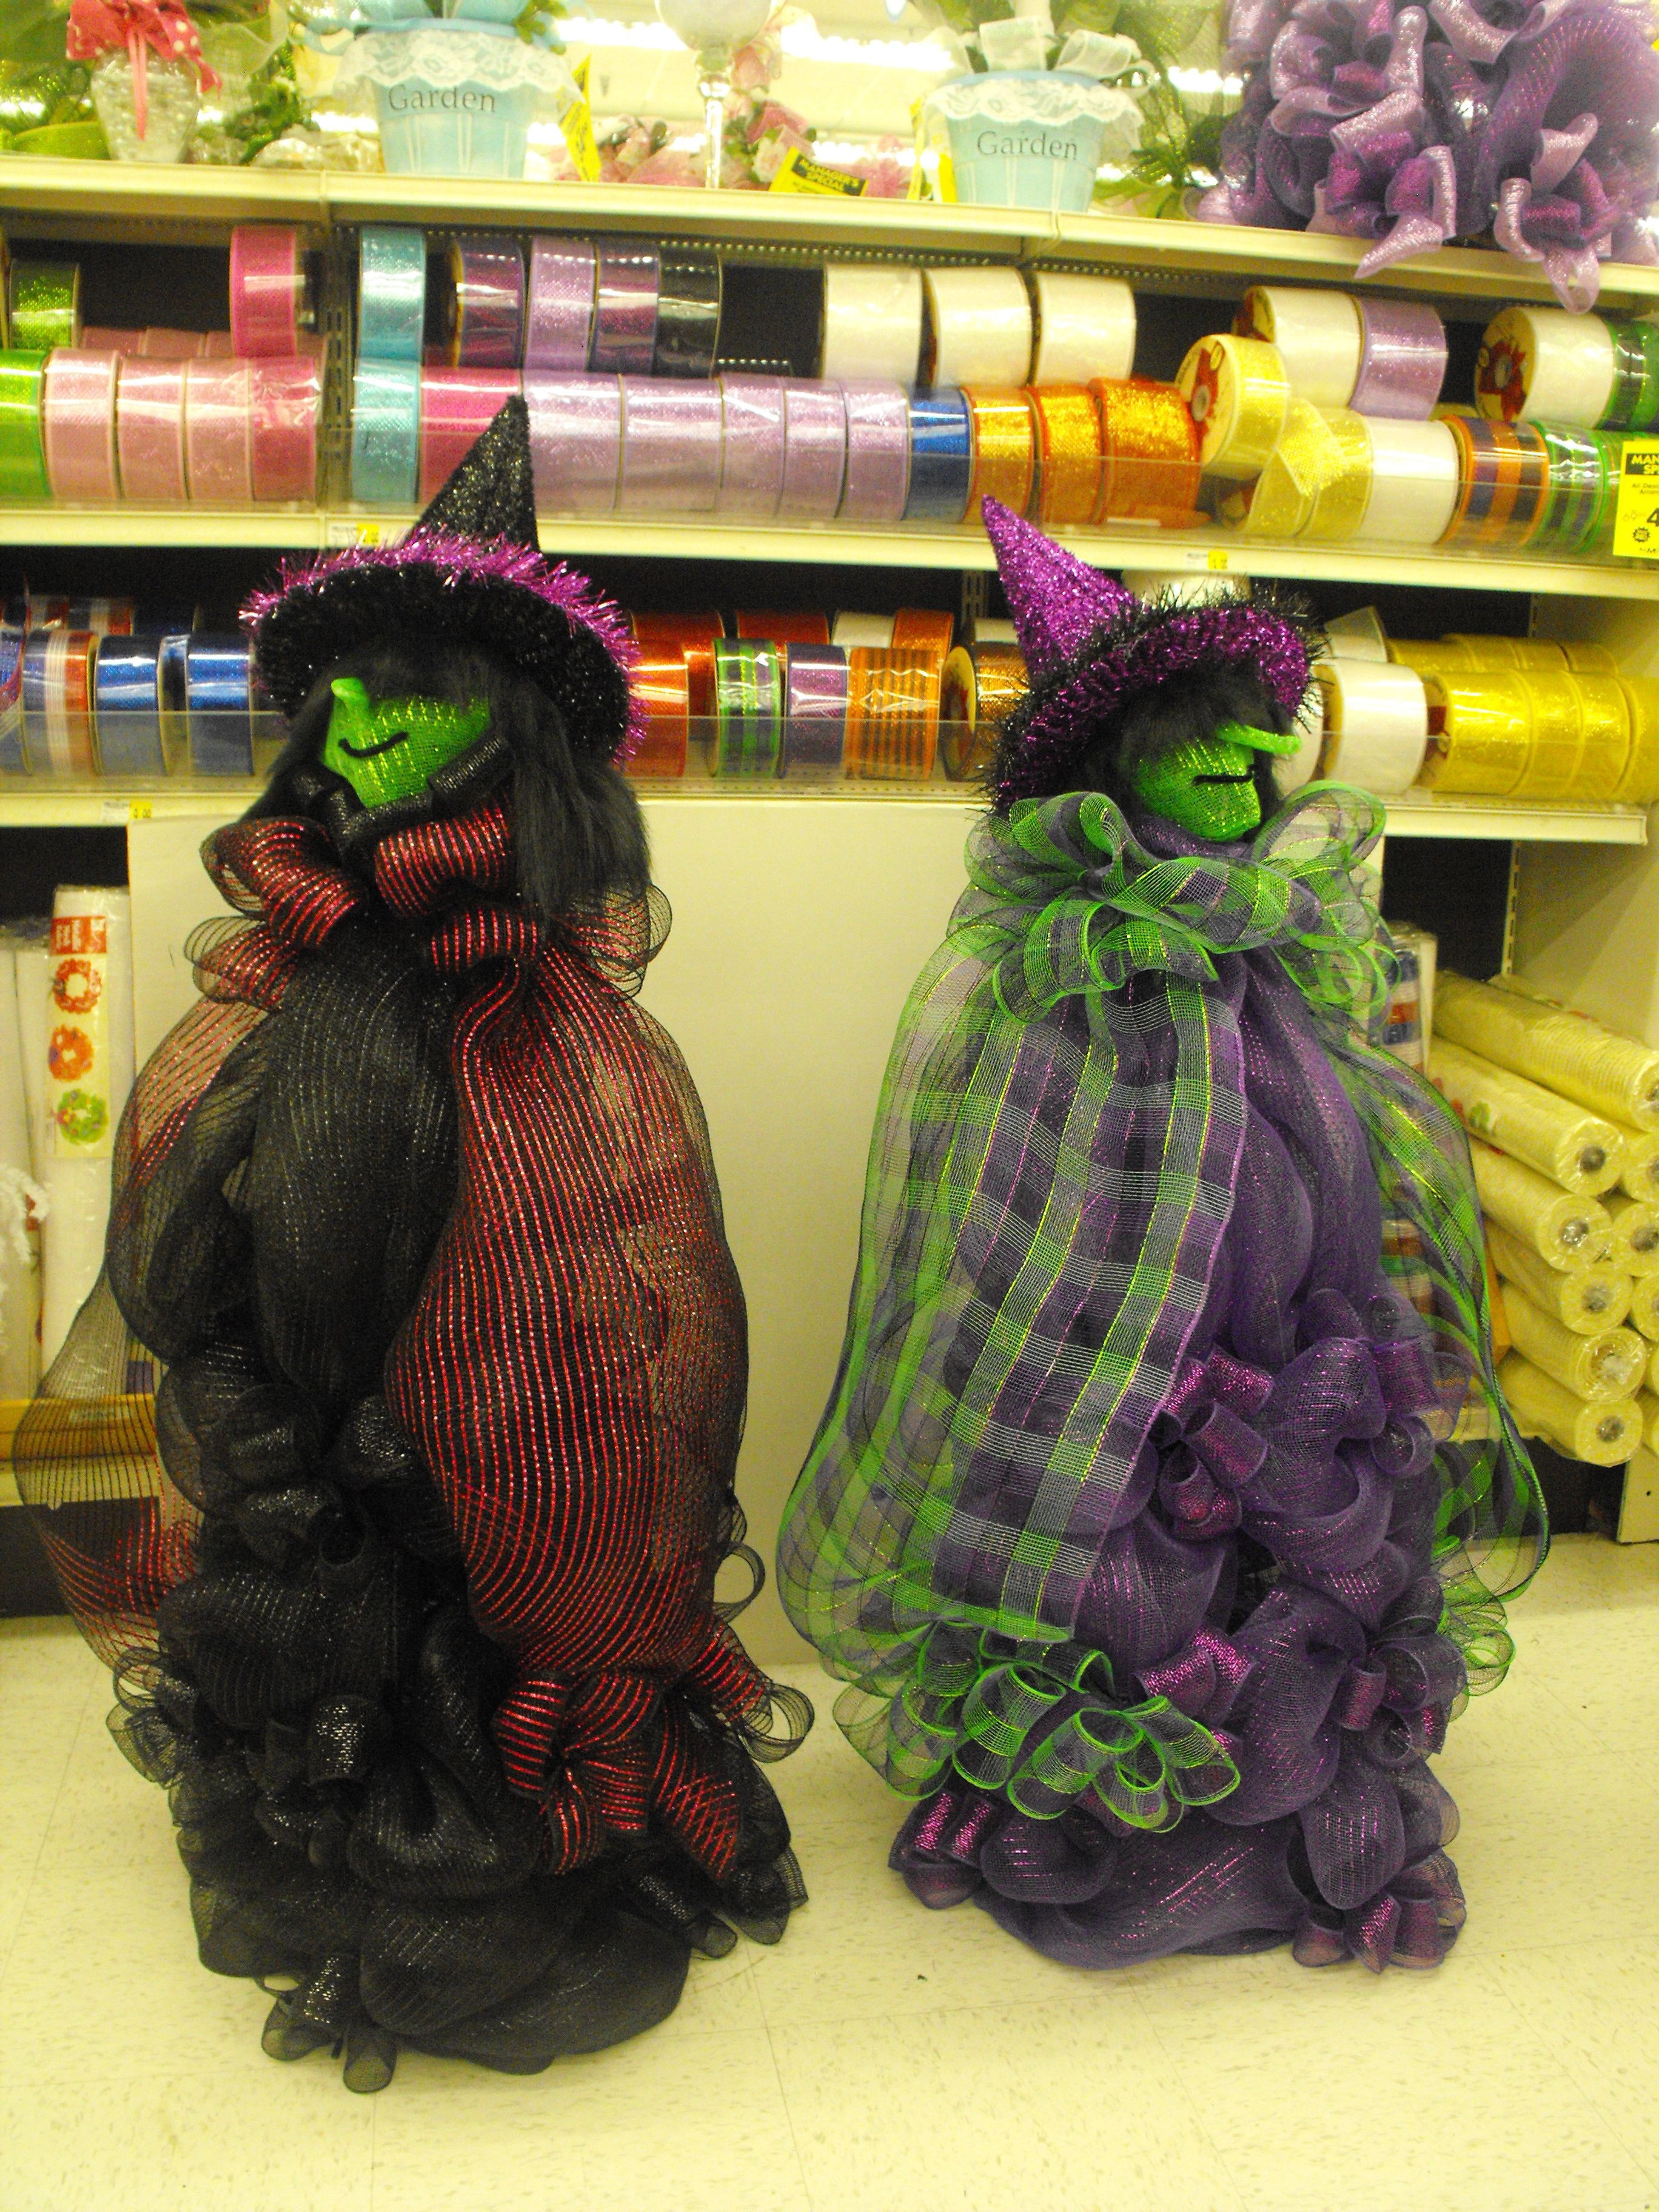 These witches are made out of Deco Mesh Deco Mesh